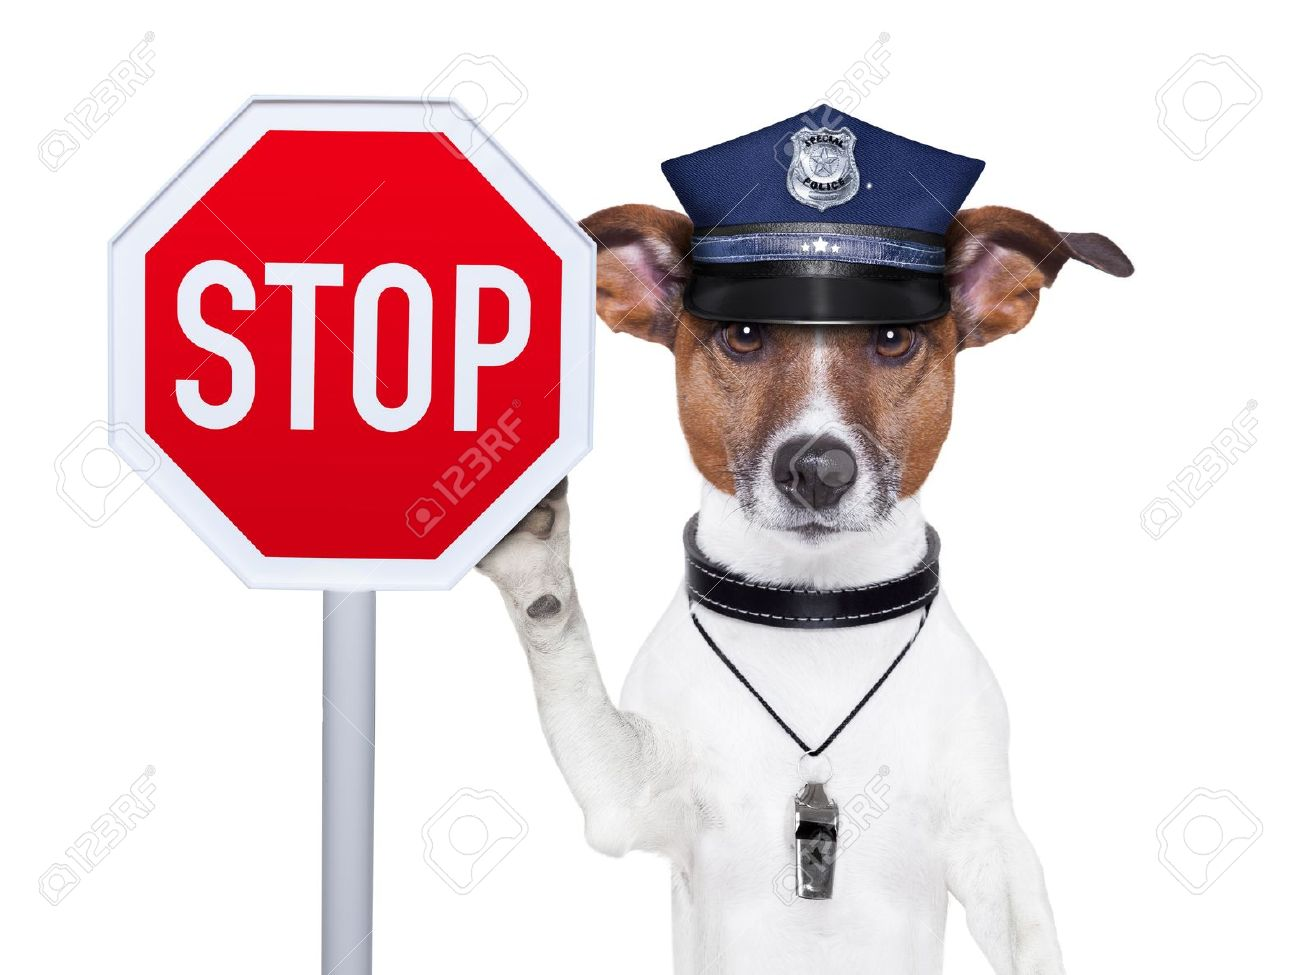 16839357-police-dog-with-a-street-stop-sign-stock-photo.jpg